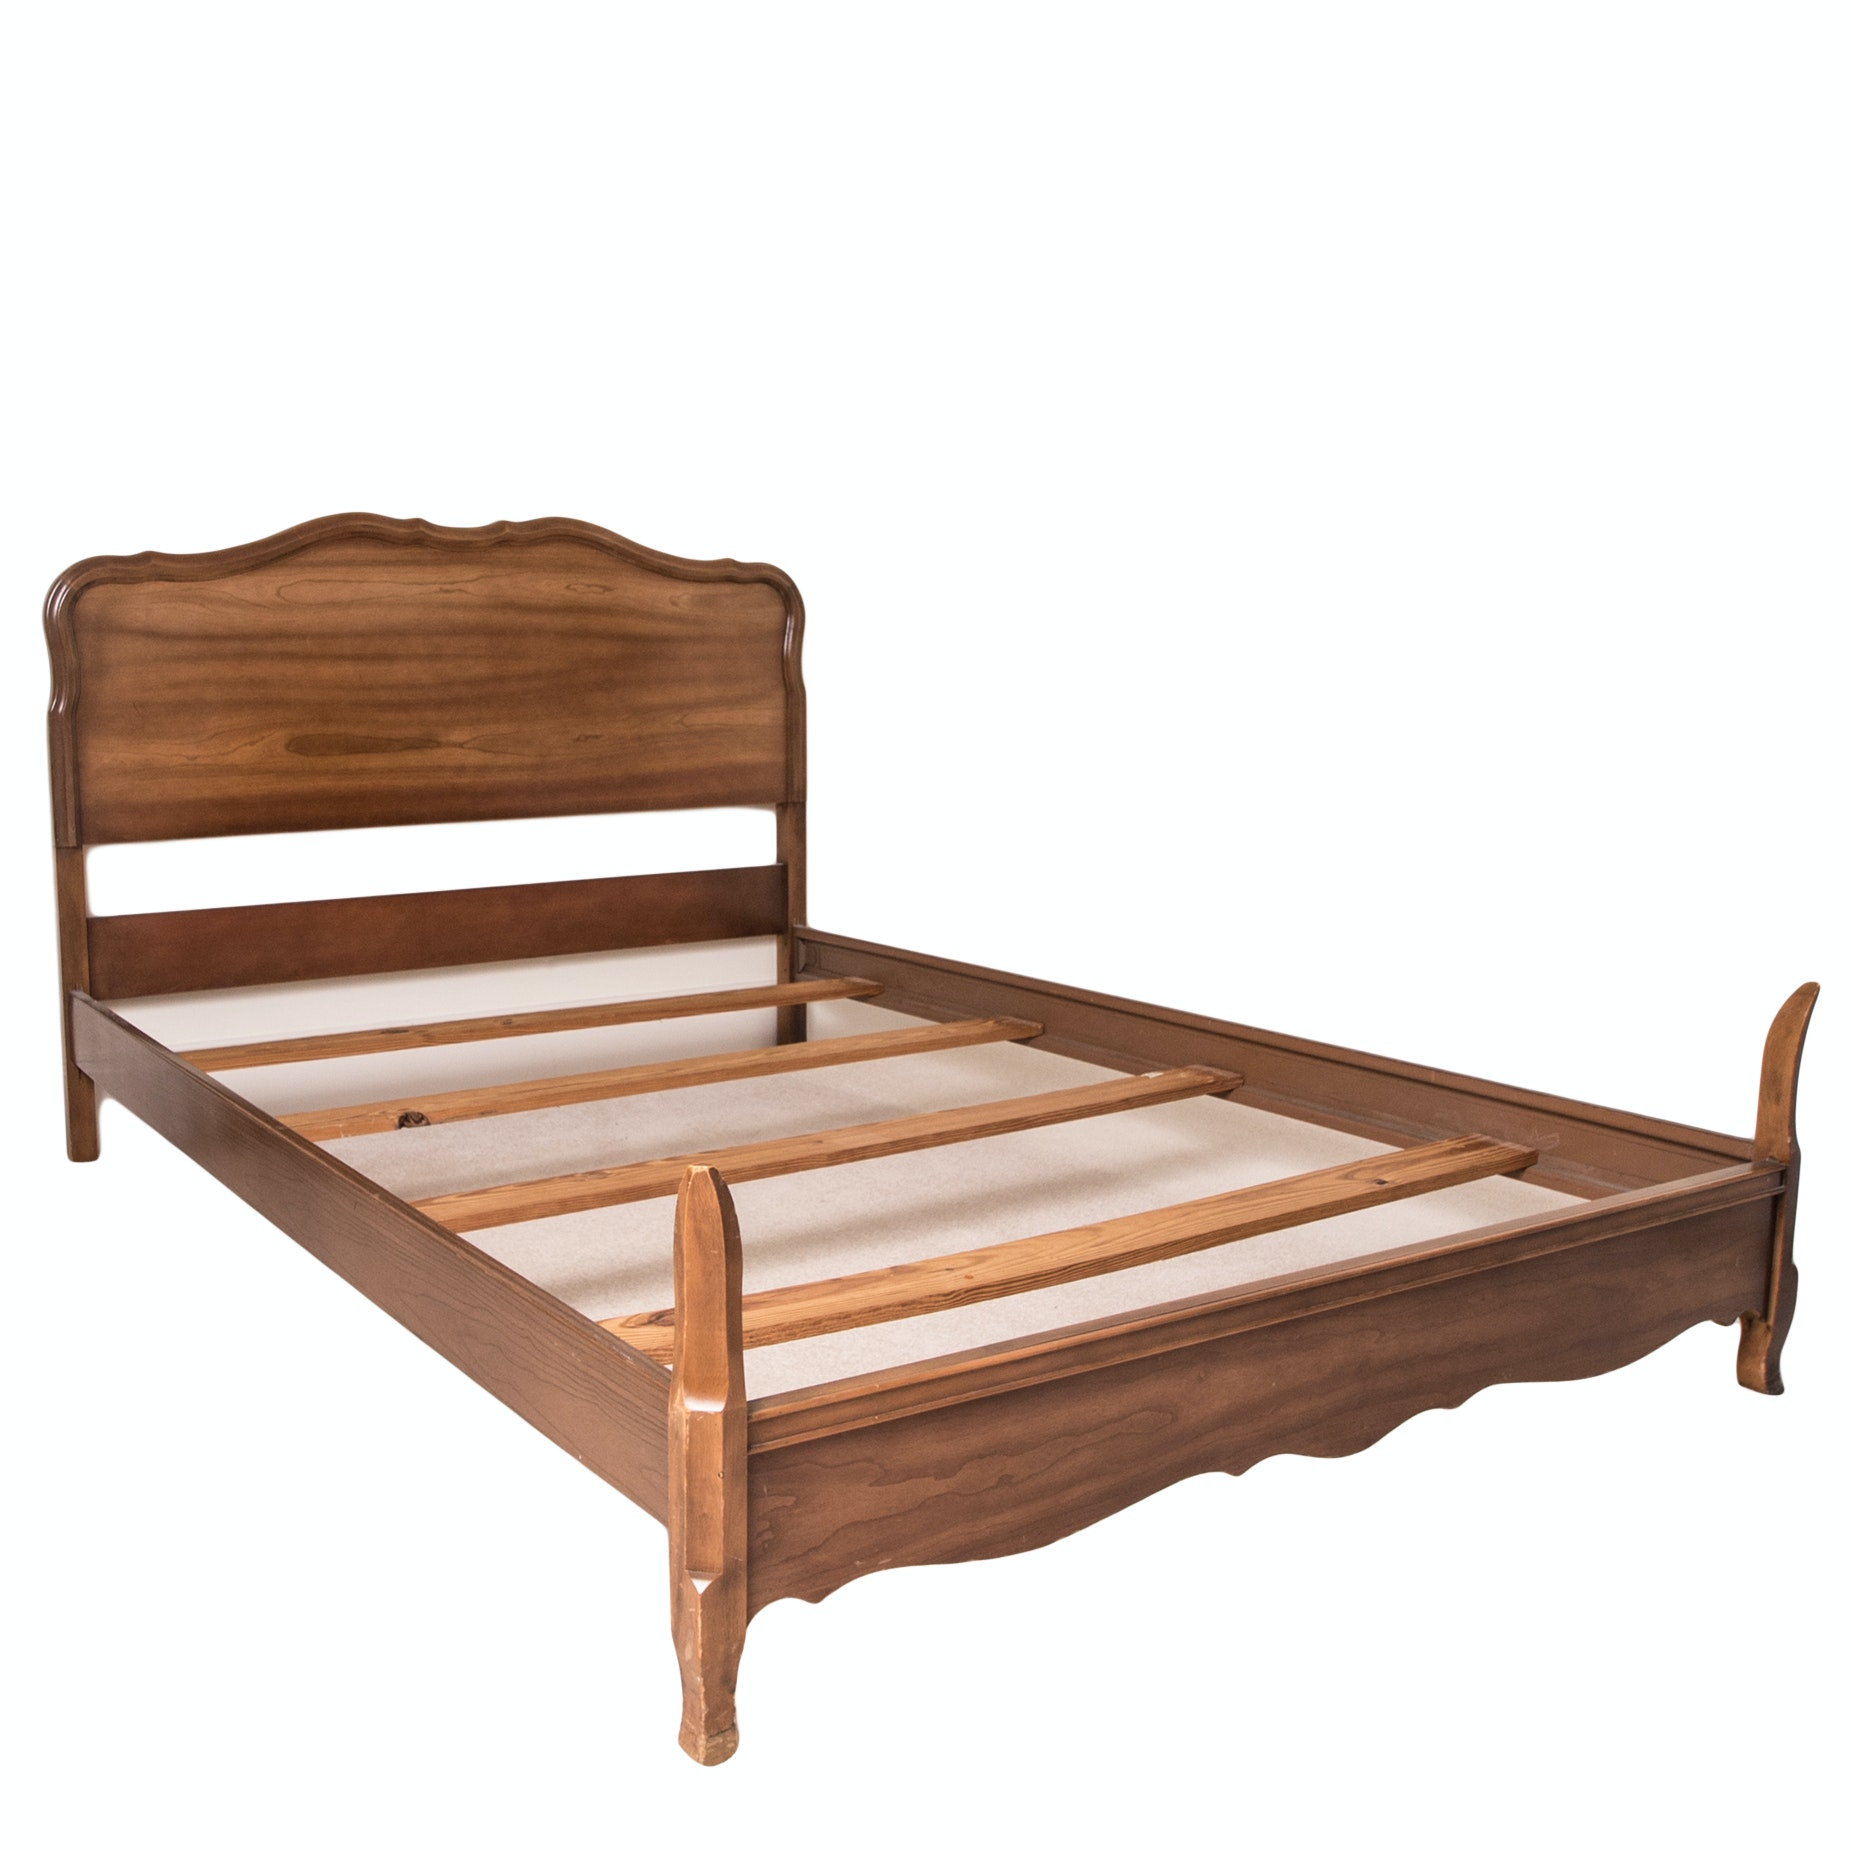 French Provincial Maple Full Size Bed Frame